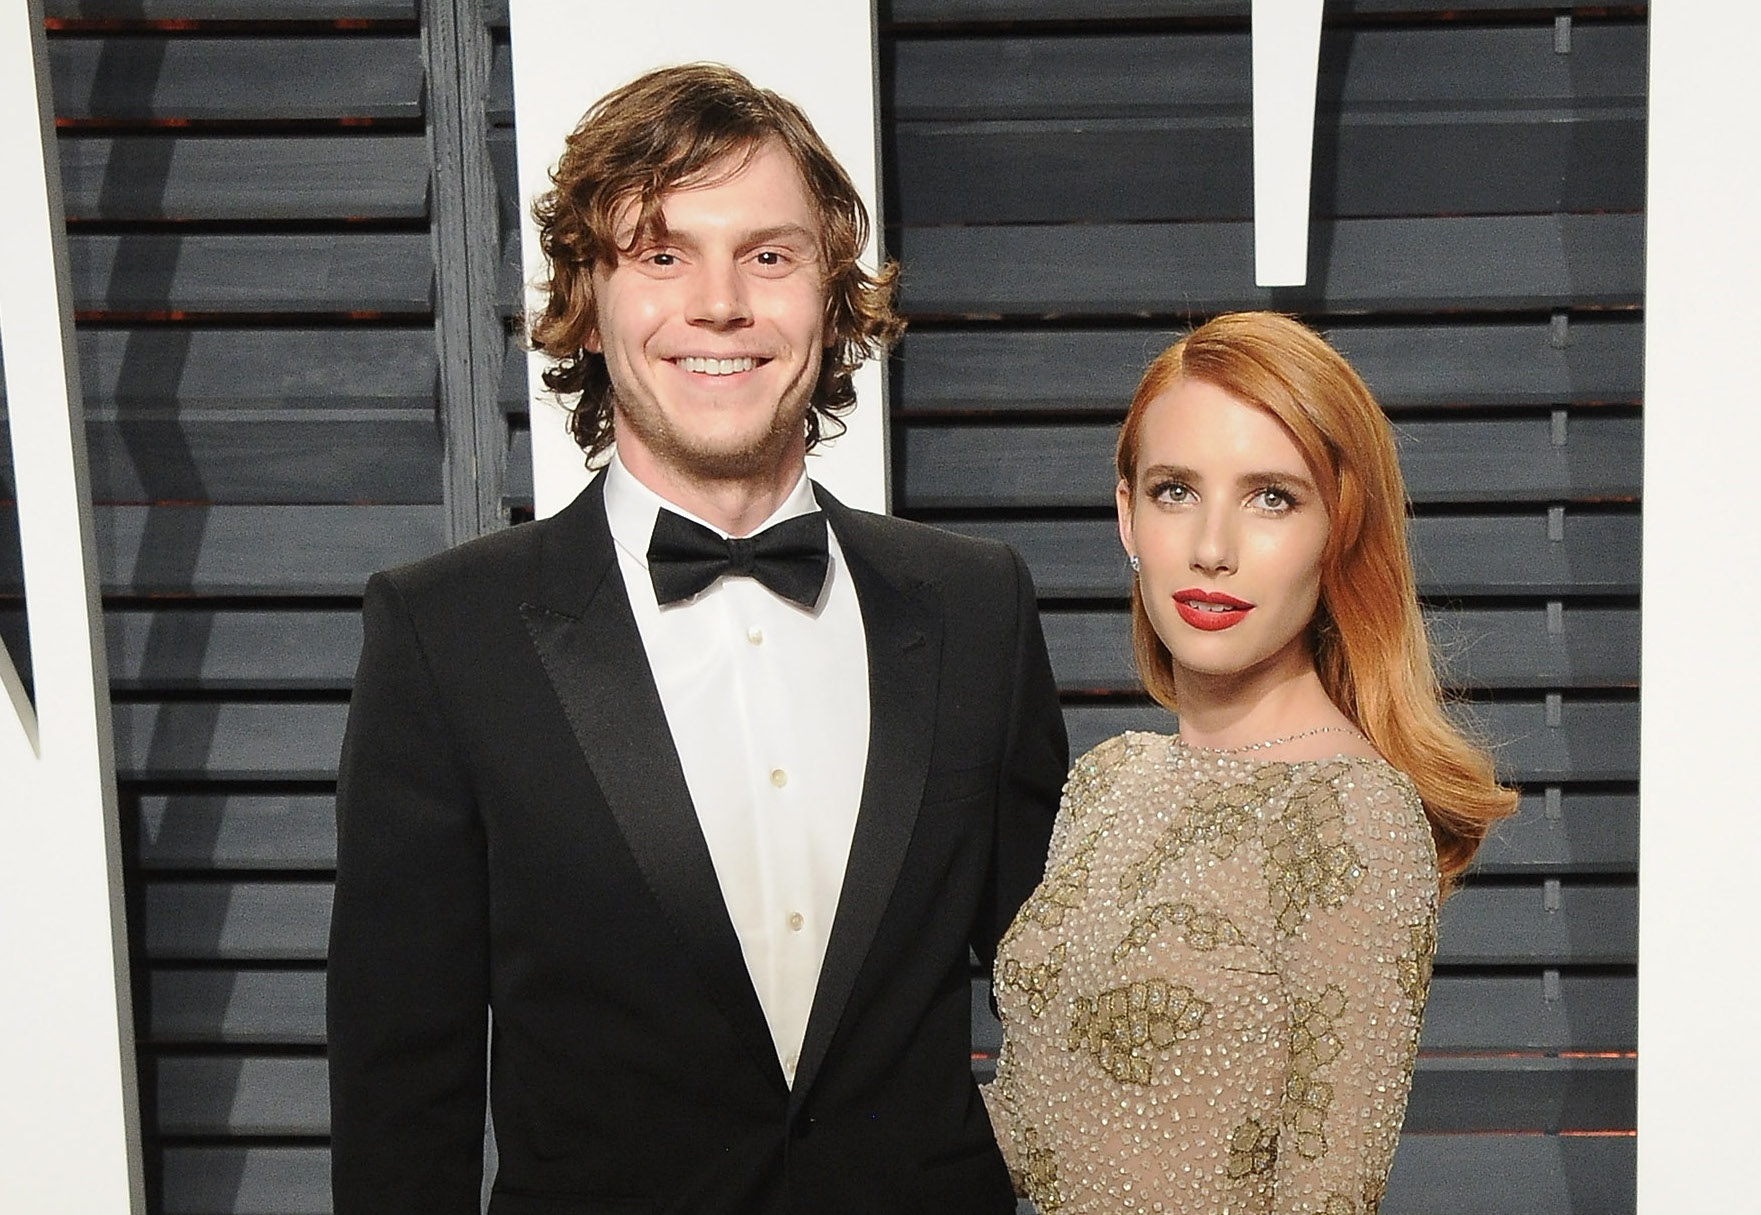 Evan Peters showed his love for Emma Roberts' book club